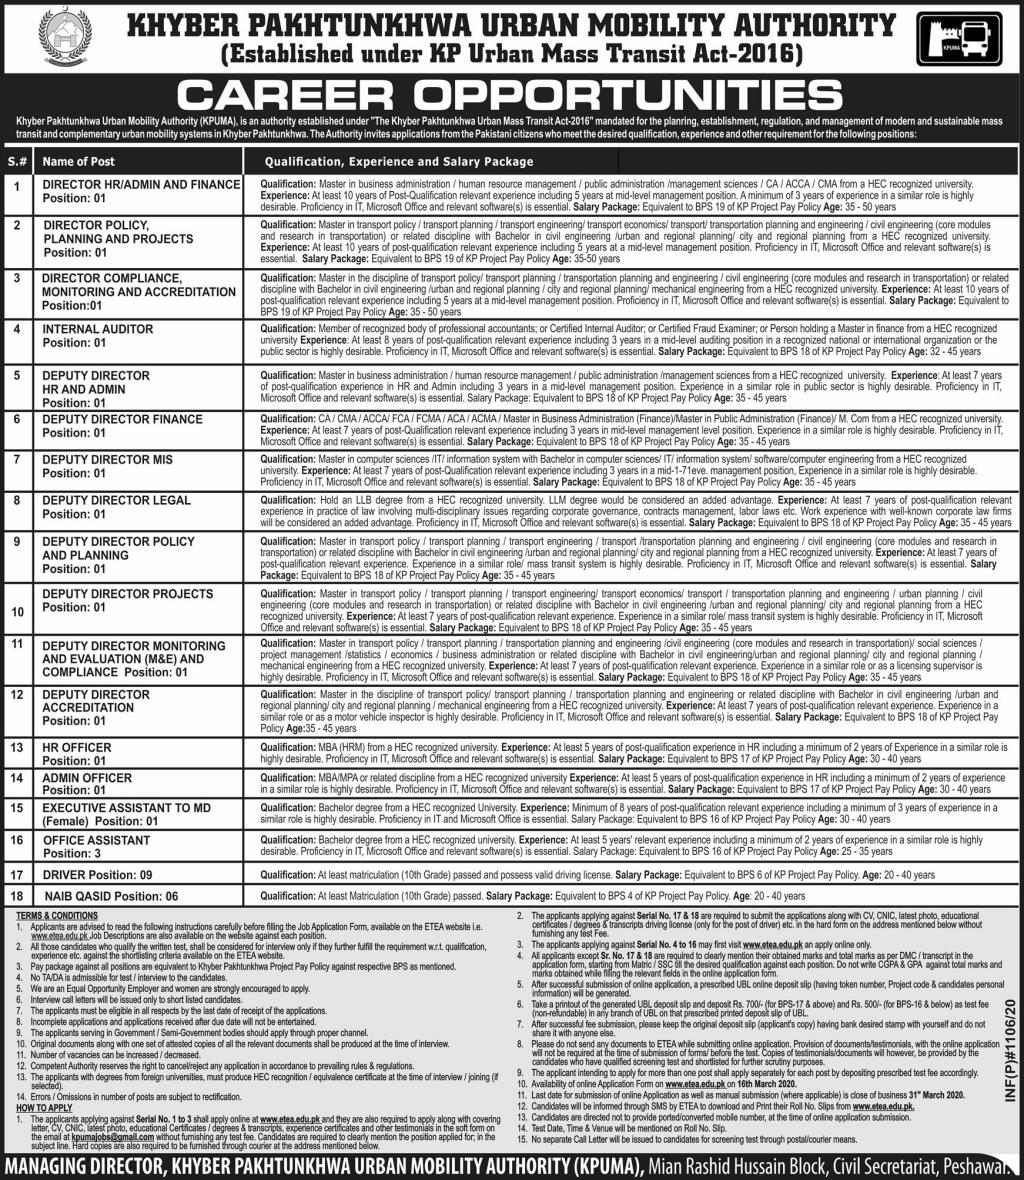 KPK Urban Mobility Authority KPUMA Jobs ETEA Roll No Slip